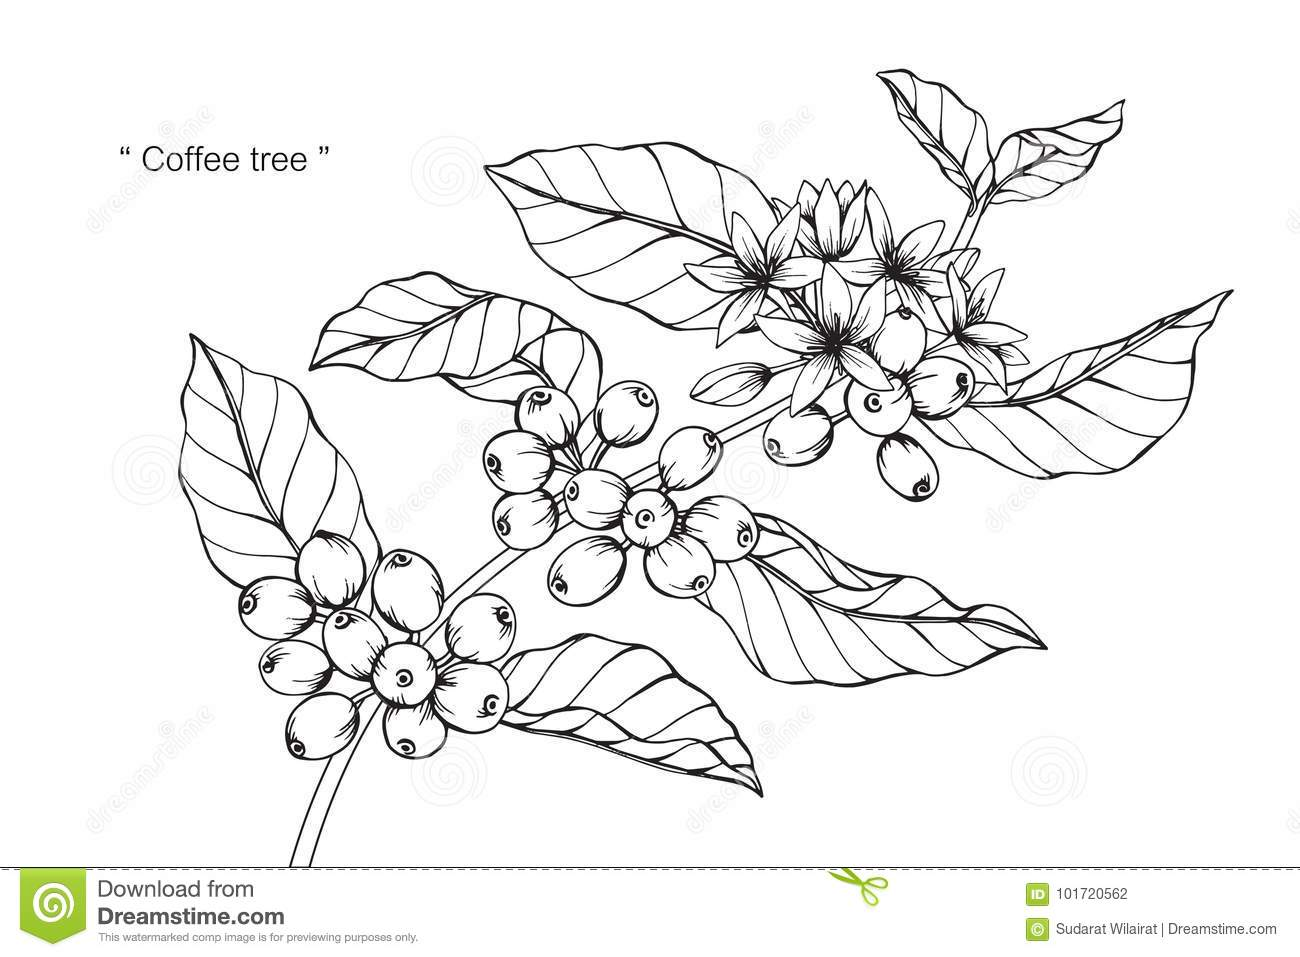 It is an image of Superb Coffee Plant Drawing